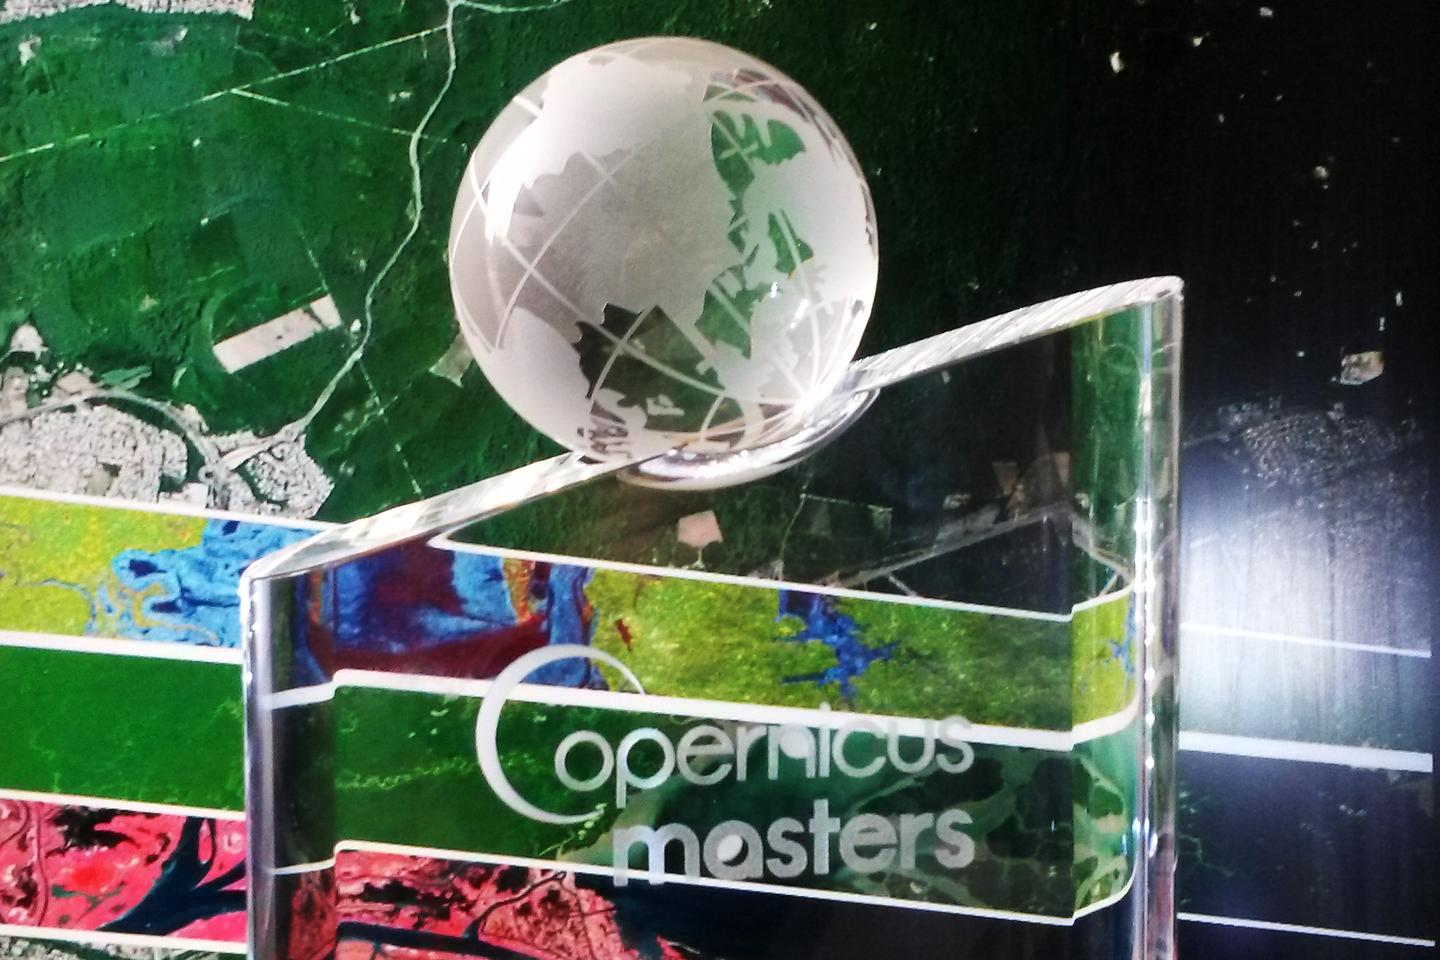 The Copernicus Masters 2014 trophy, to be awarded the outstanding idea, application, or business concept based on Earth observation data